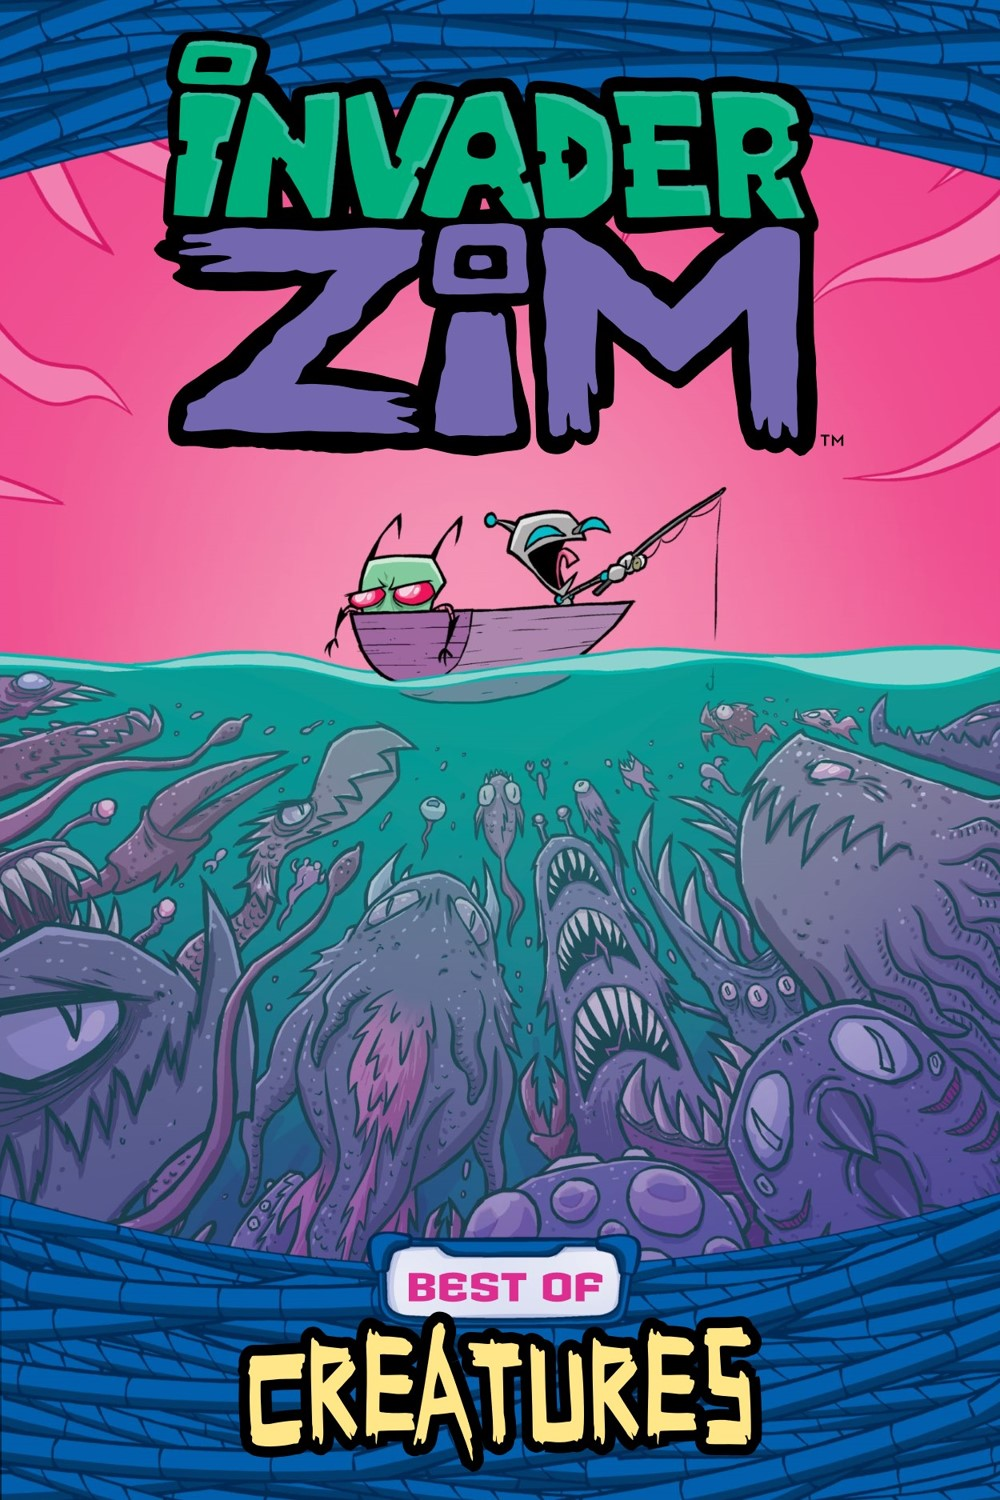 INVADERZIM-BEST-OF-CREATURES-REFERENCE-001 ComicList Previews: INVADER ZIM BEST OF CREATURES VOLUME 1 TP